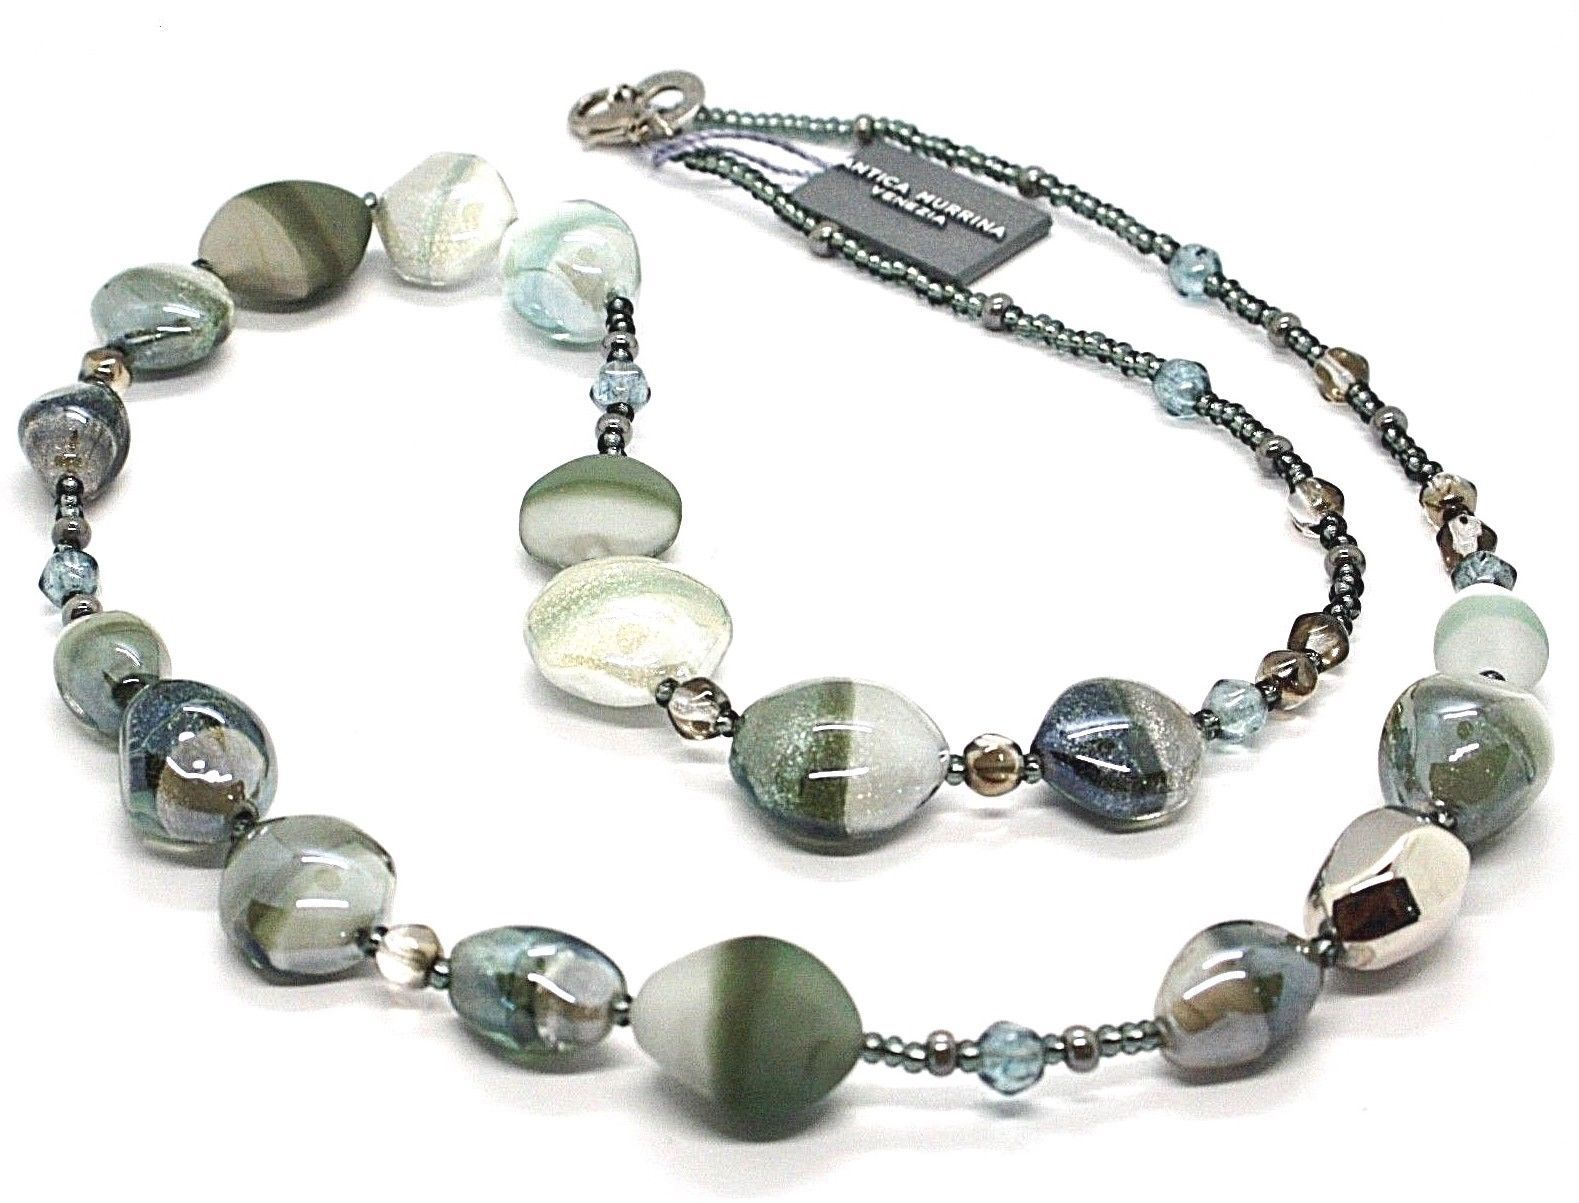 NECKLACE ANTICA MURRINA VENEZIA WITH MURANO GLASS WHITE SILVER GRAY CO979A12